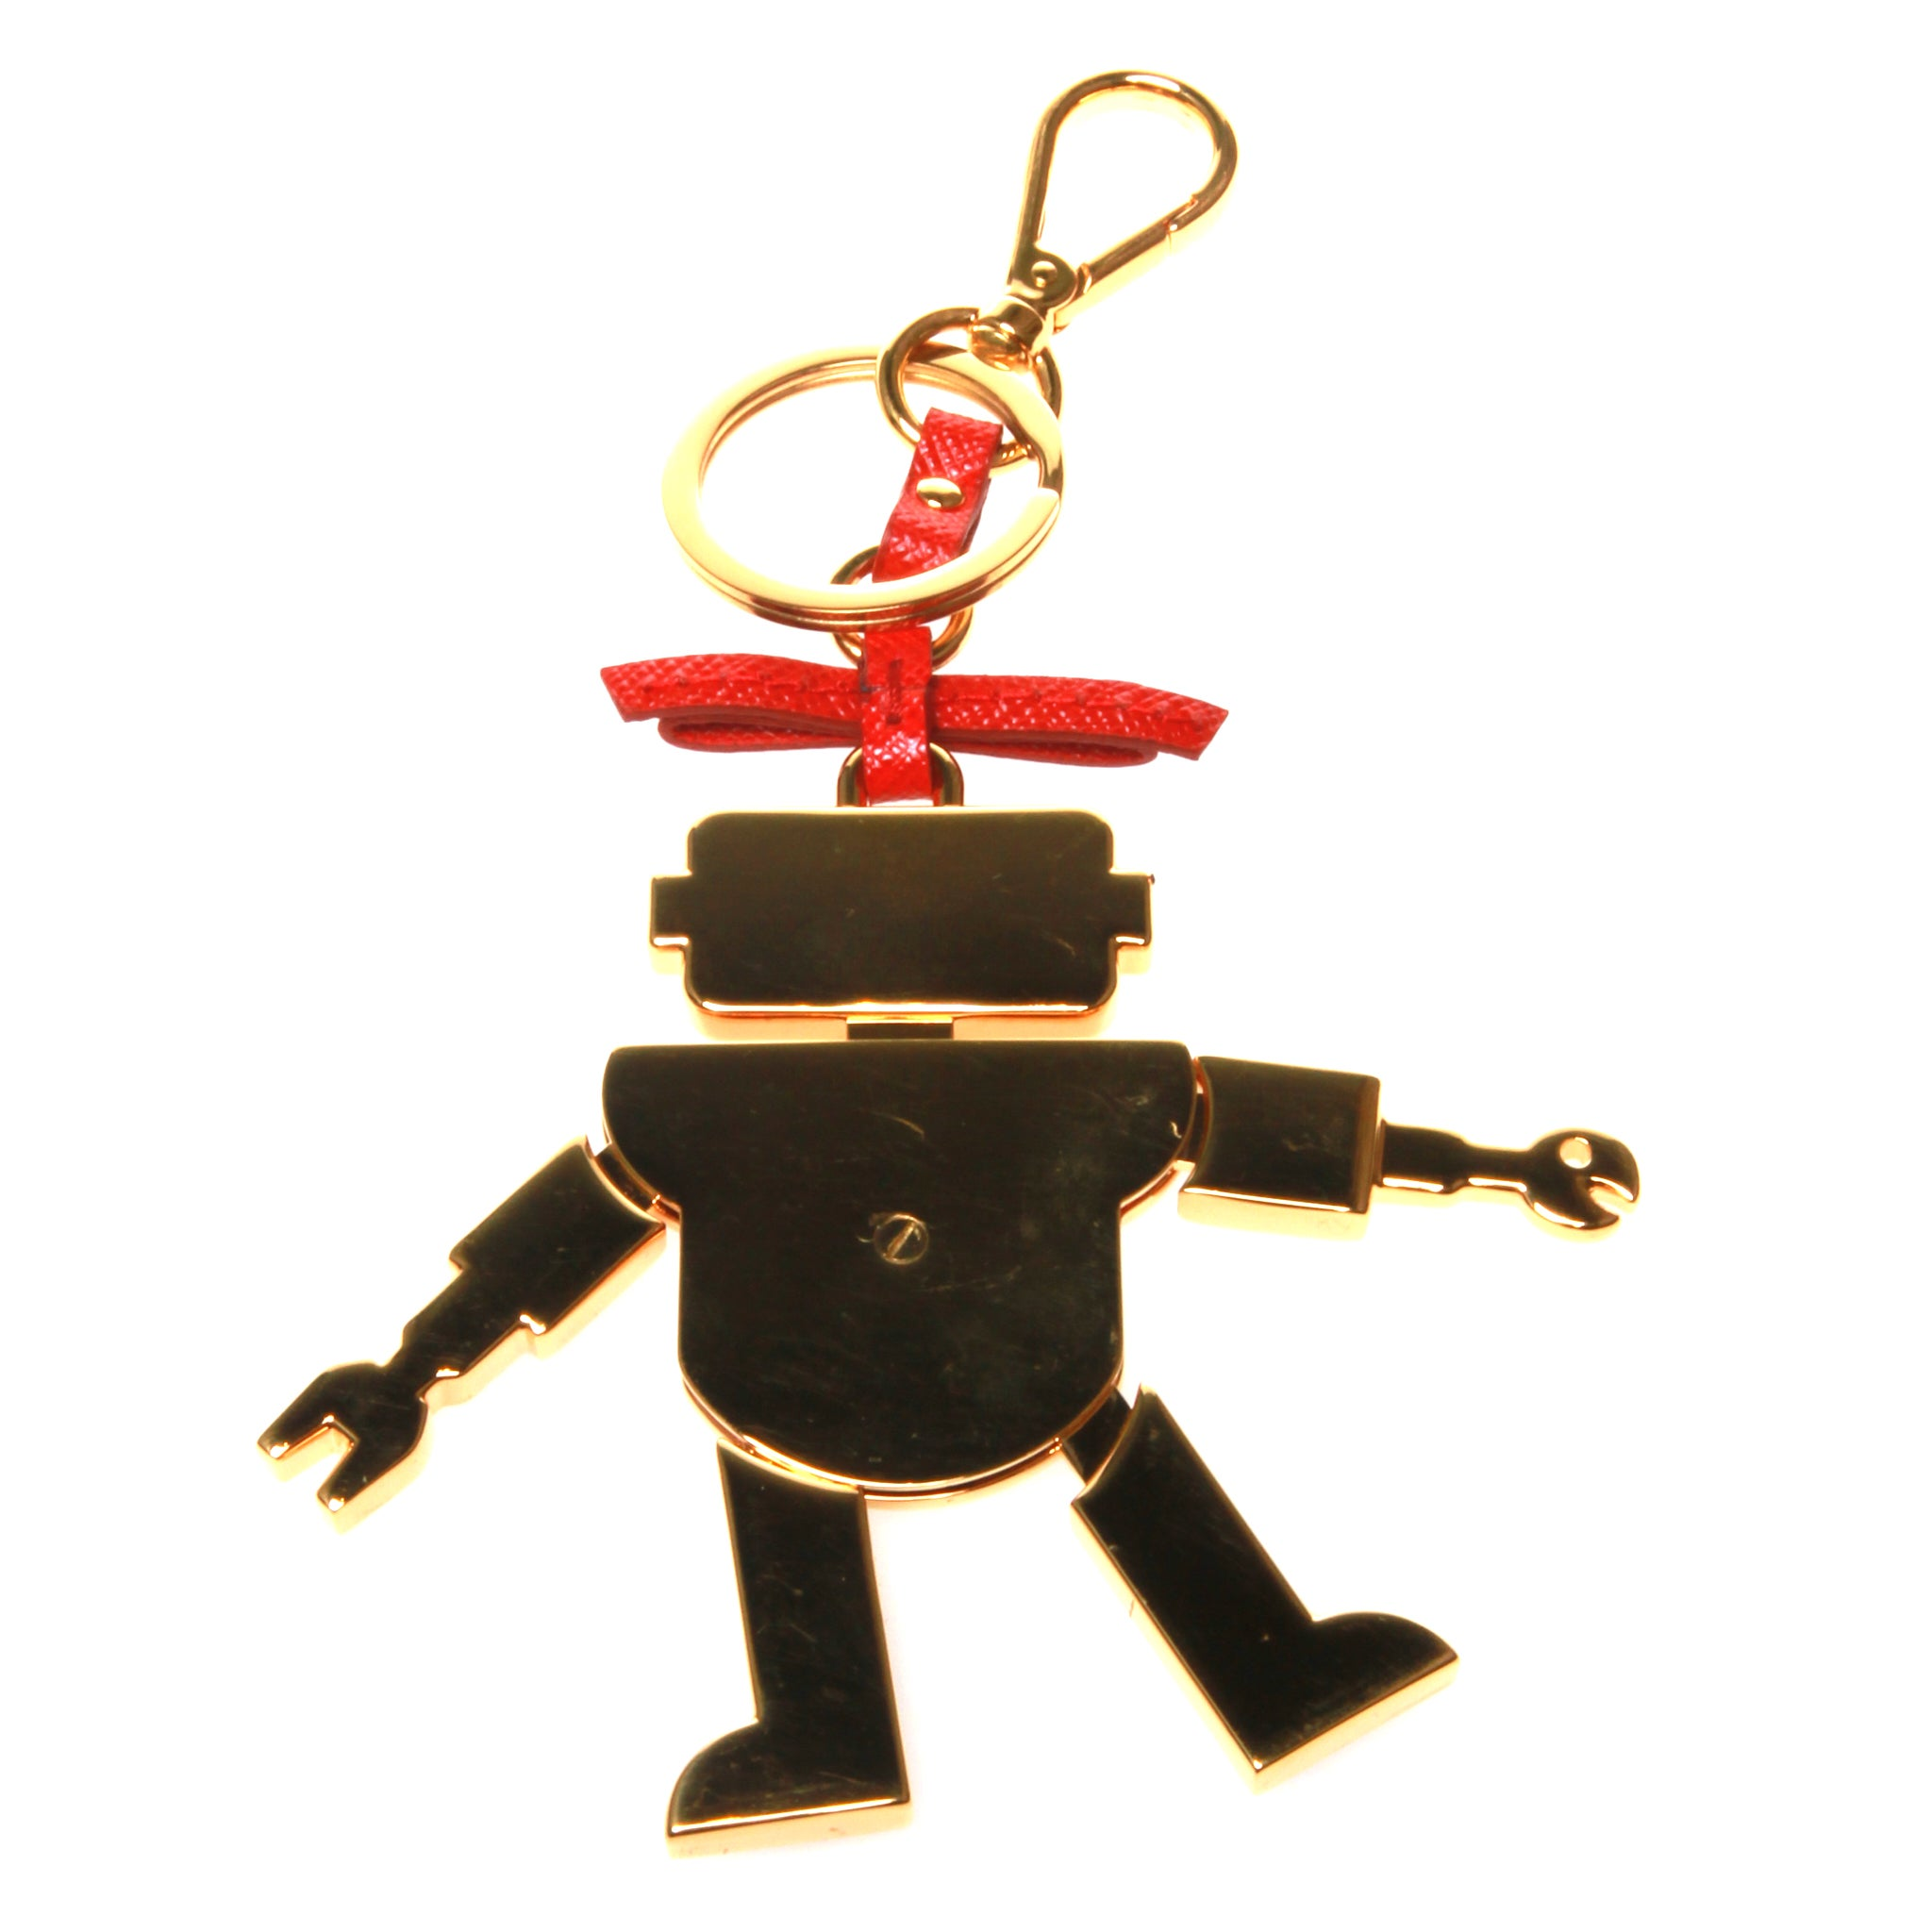 16953da5f1a114 Prada Robot Keyring For Sale at 1stdibs